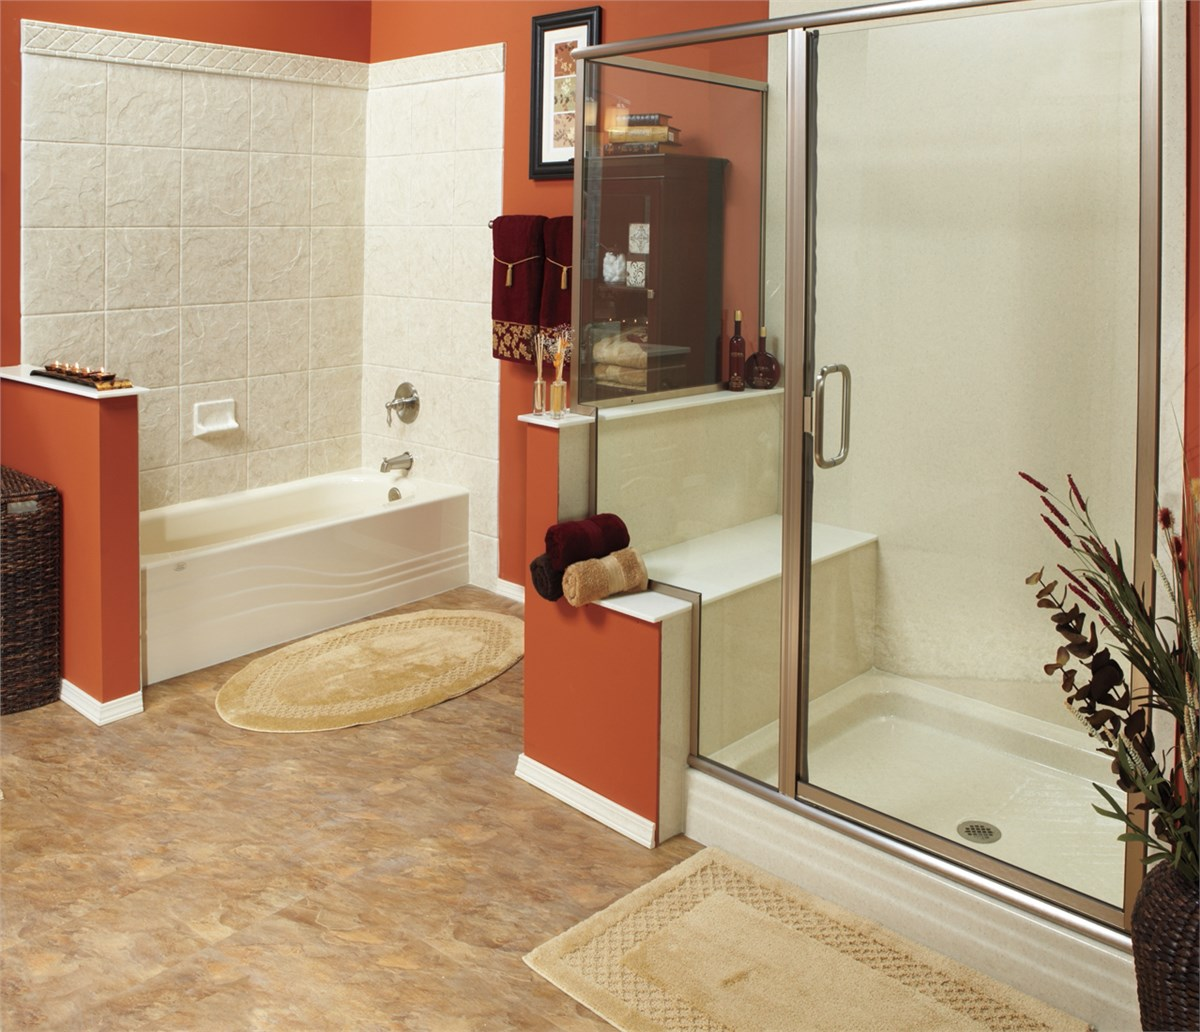 Bathroom Fixtures Albuquerque albuquerque nm bathroom remodeling | albuquerque bathroom